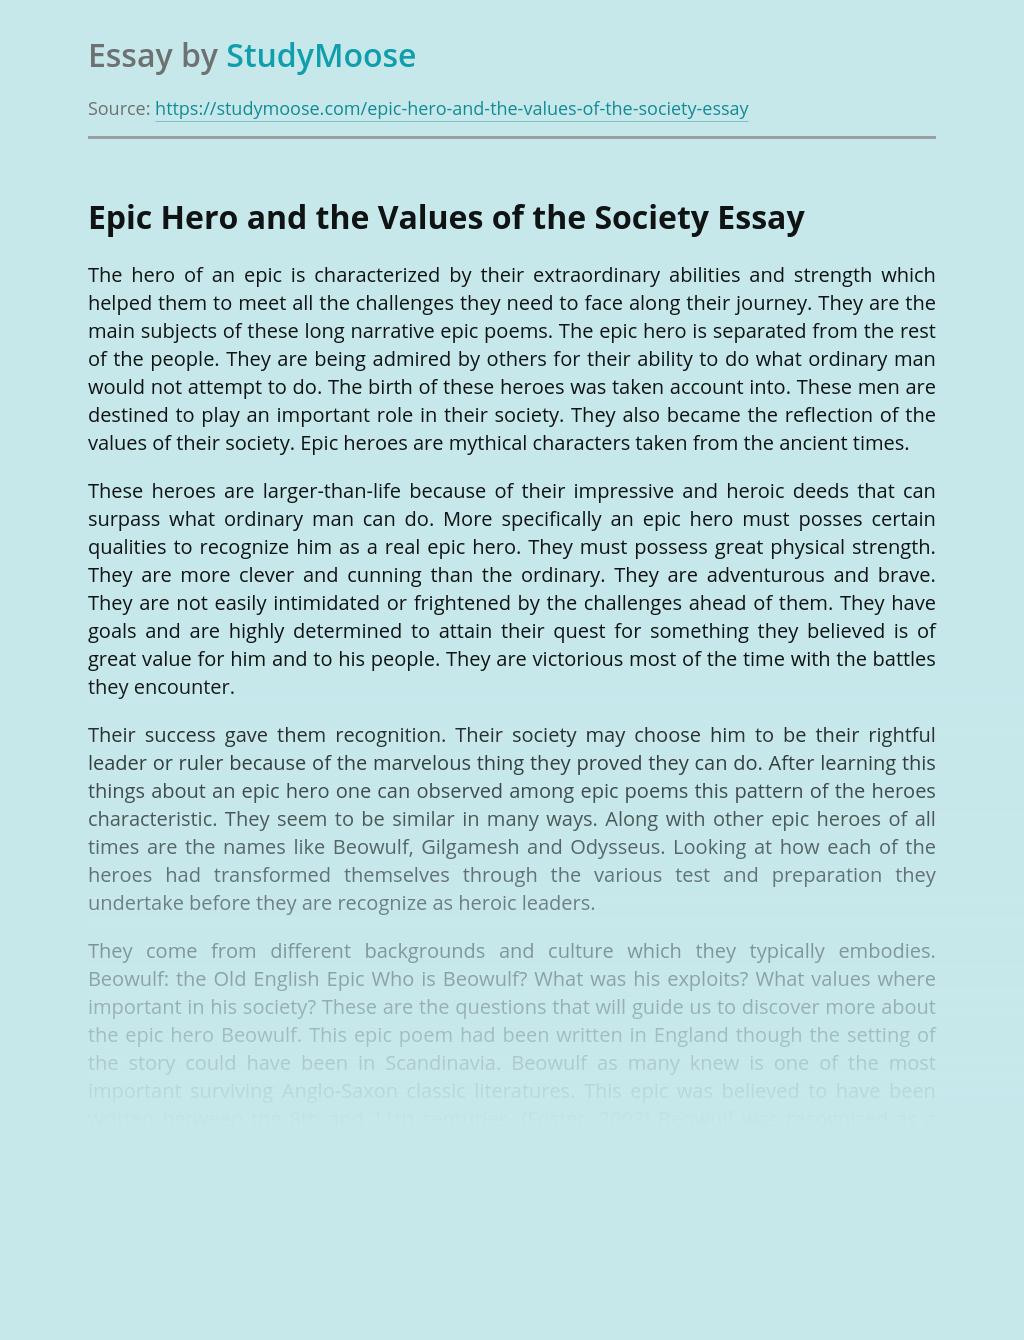 Epic Hero and the Values of the Society